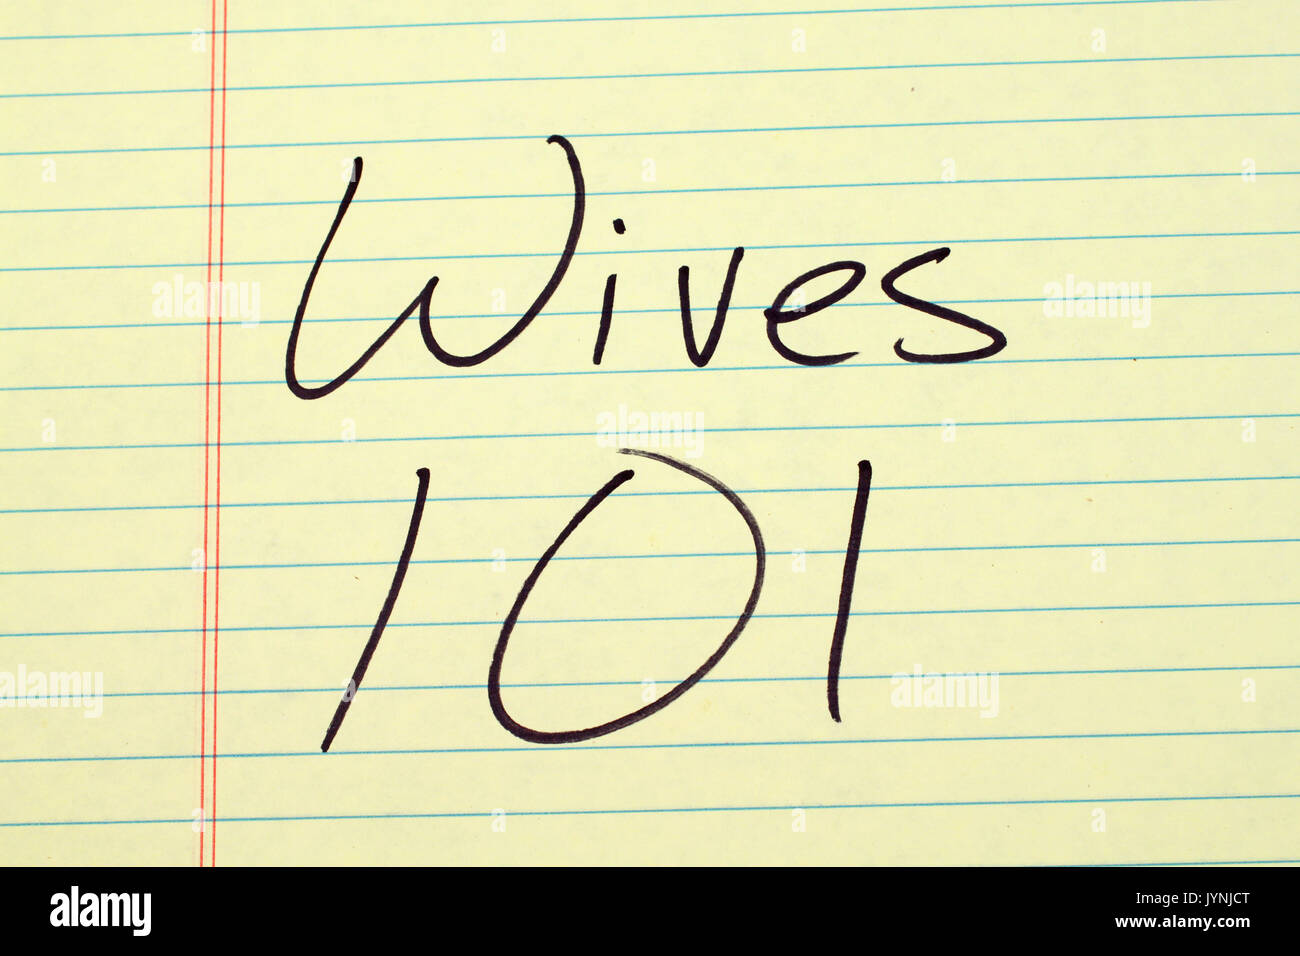 The words 'Wives 101' on a yellow legal pad - Stock Image